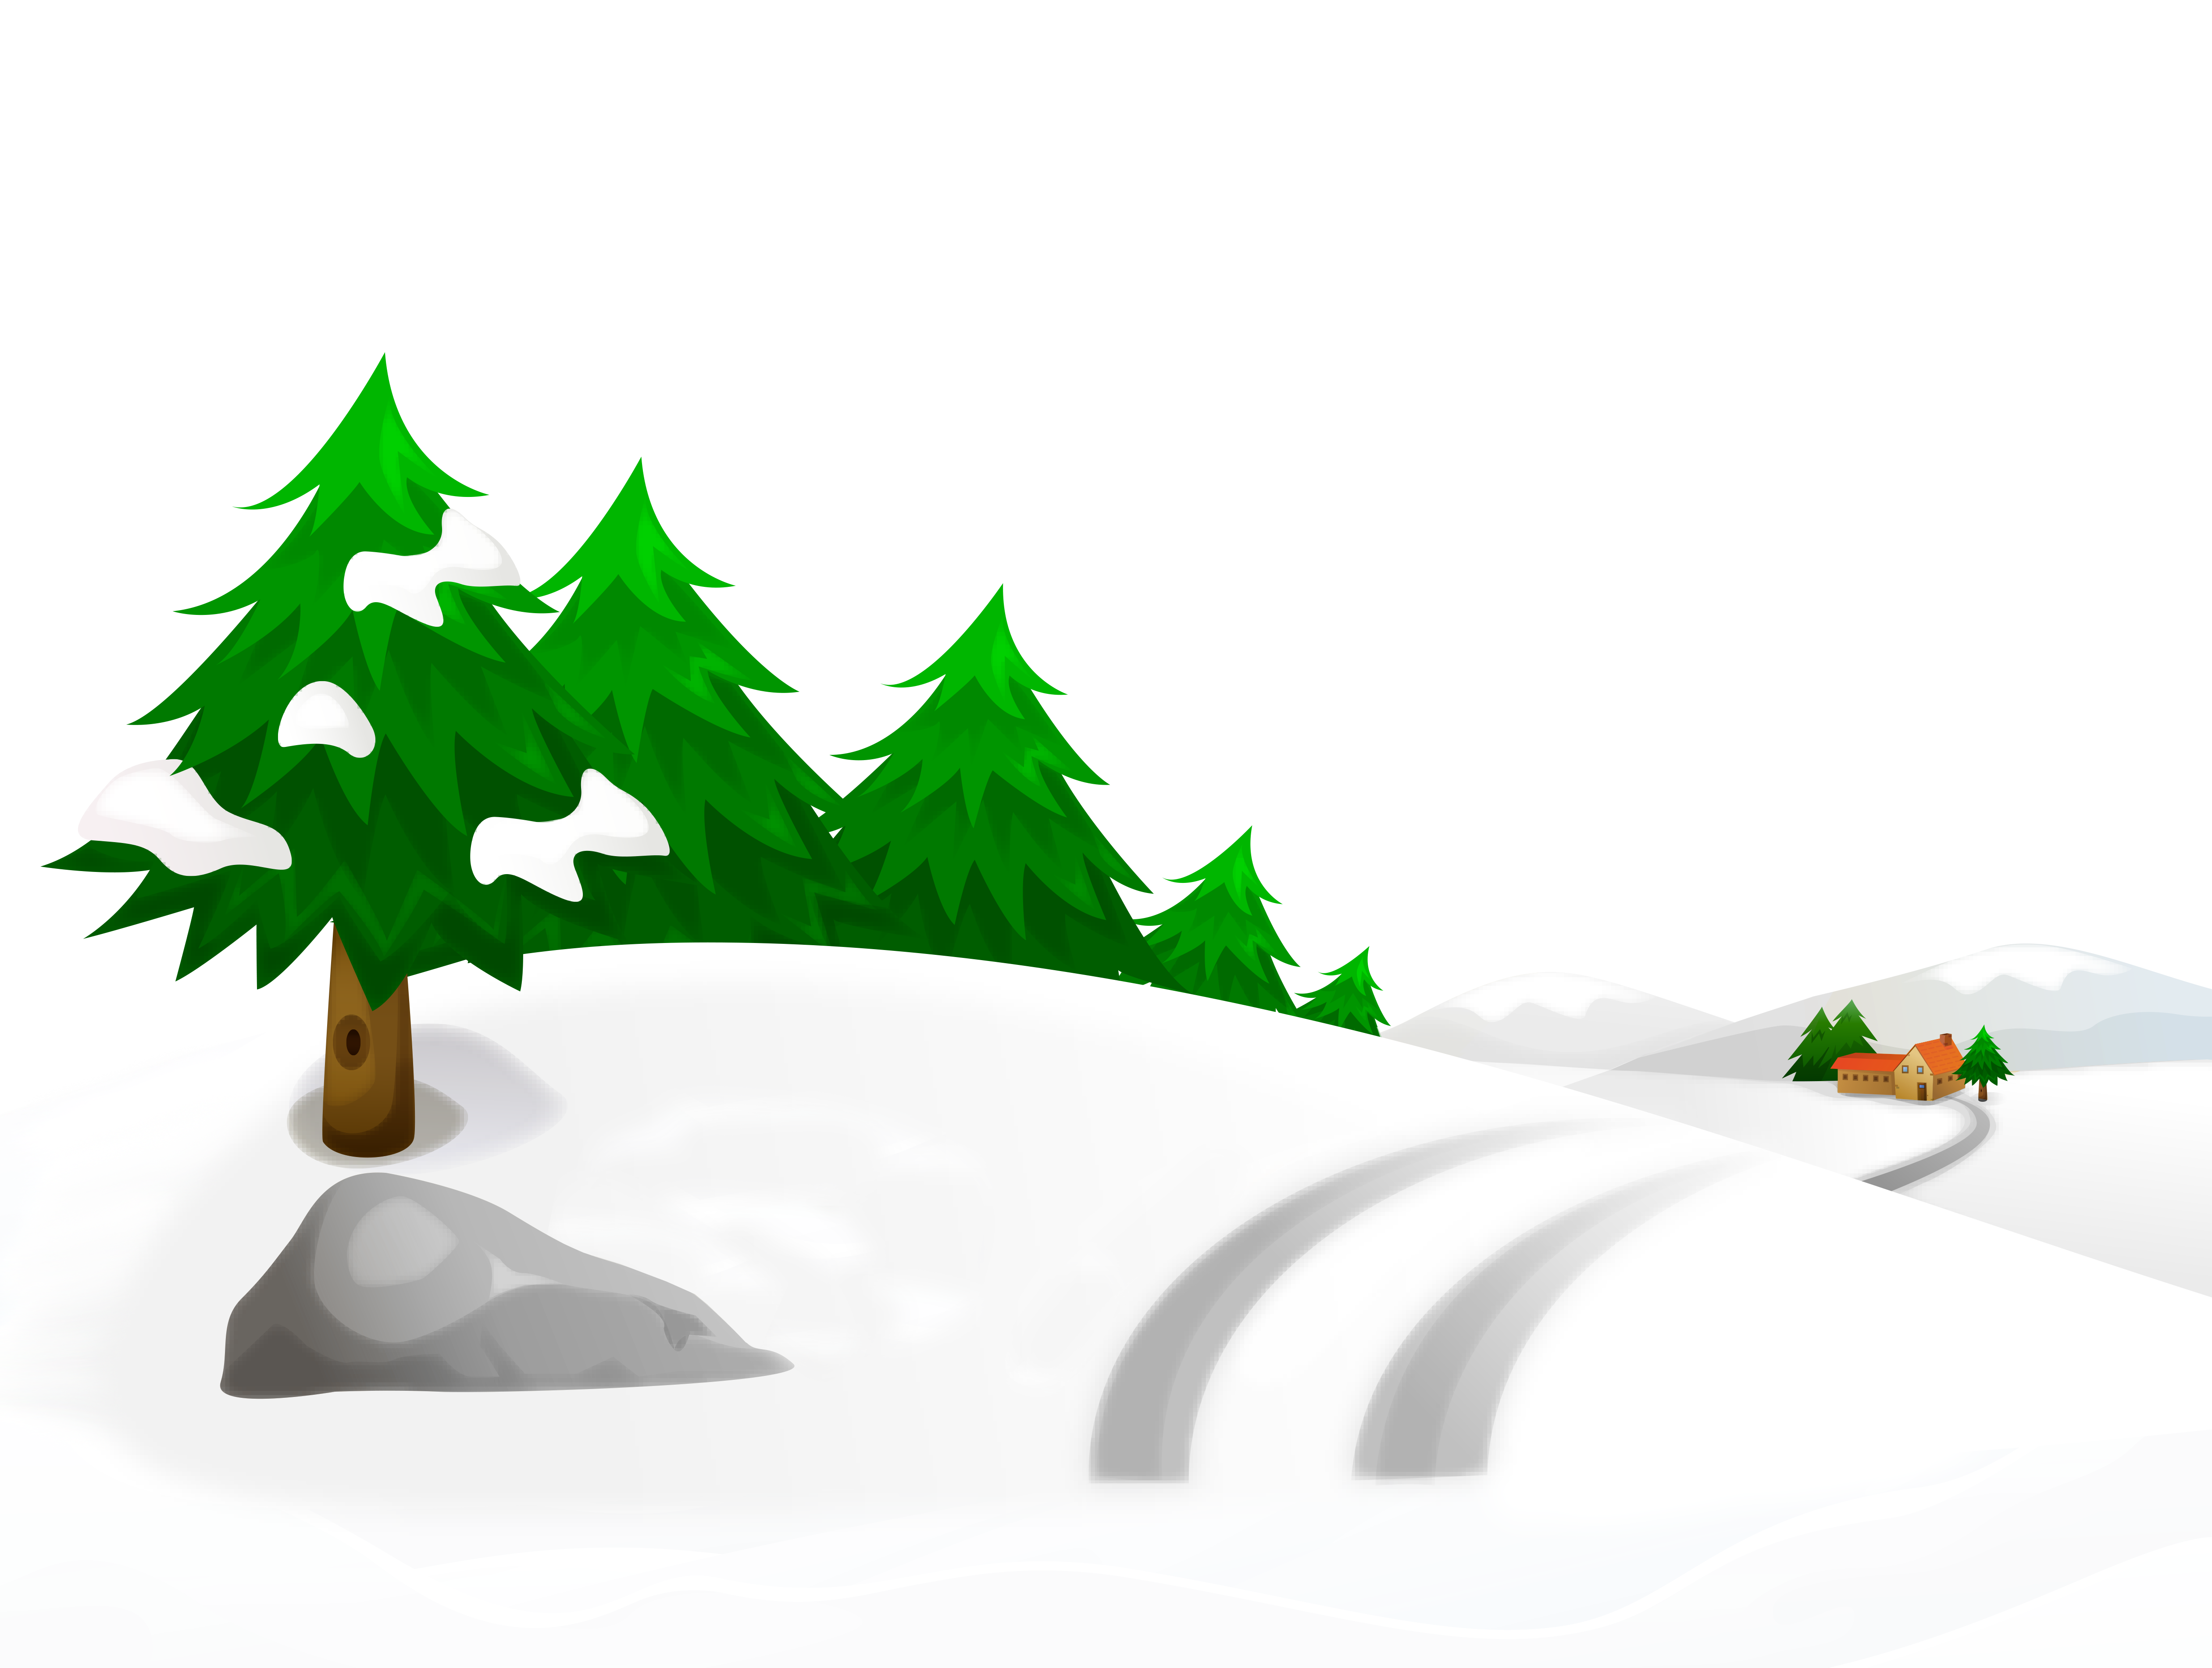 House with trees clipart svg stock Snowy Winter Ground with Trees and House PNG Clipart Image ... svg stock